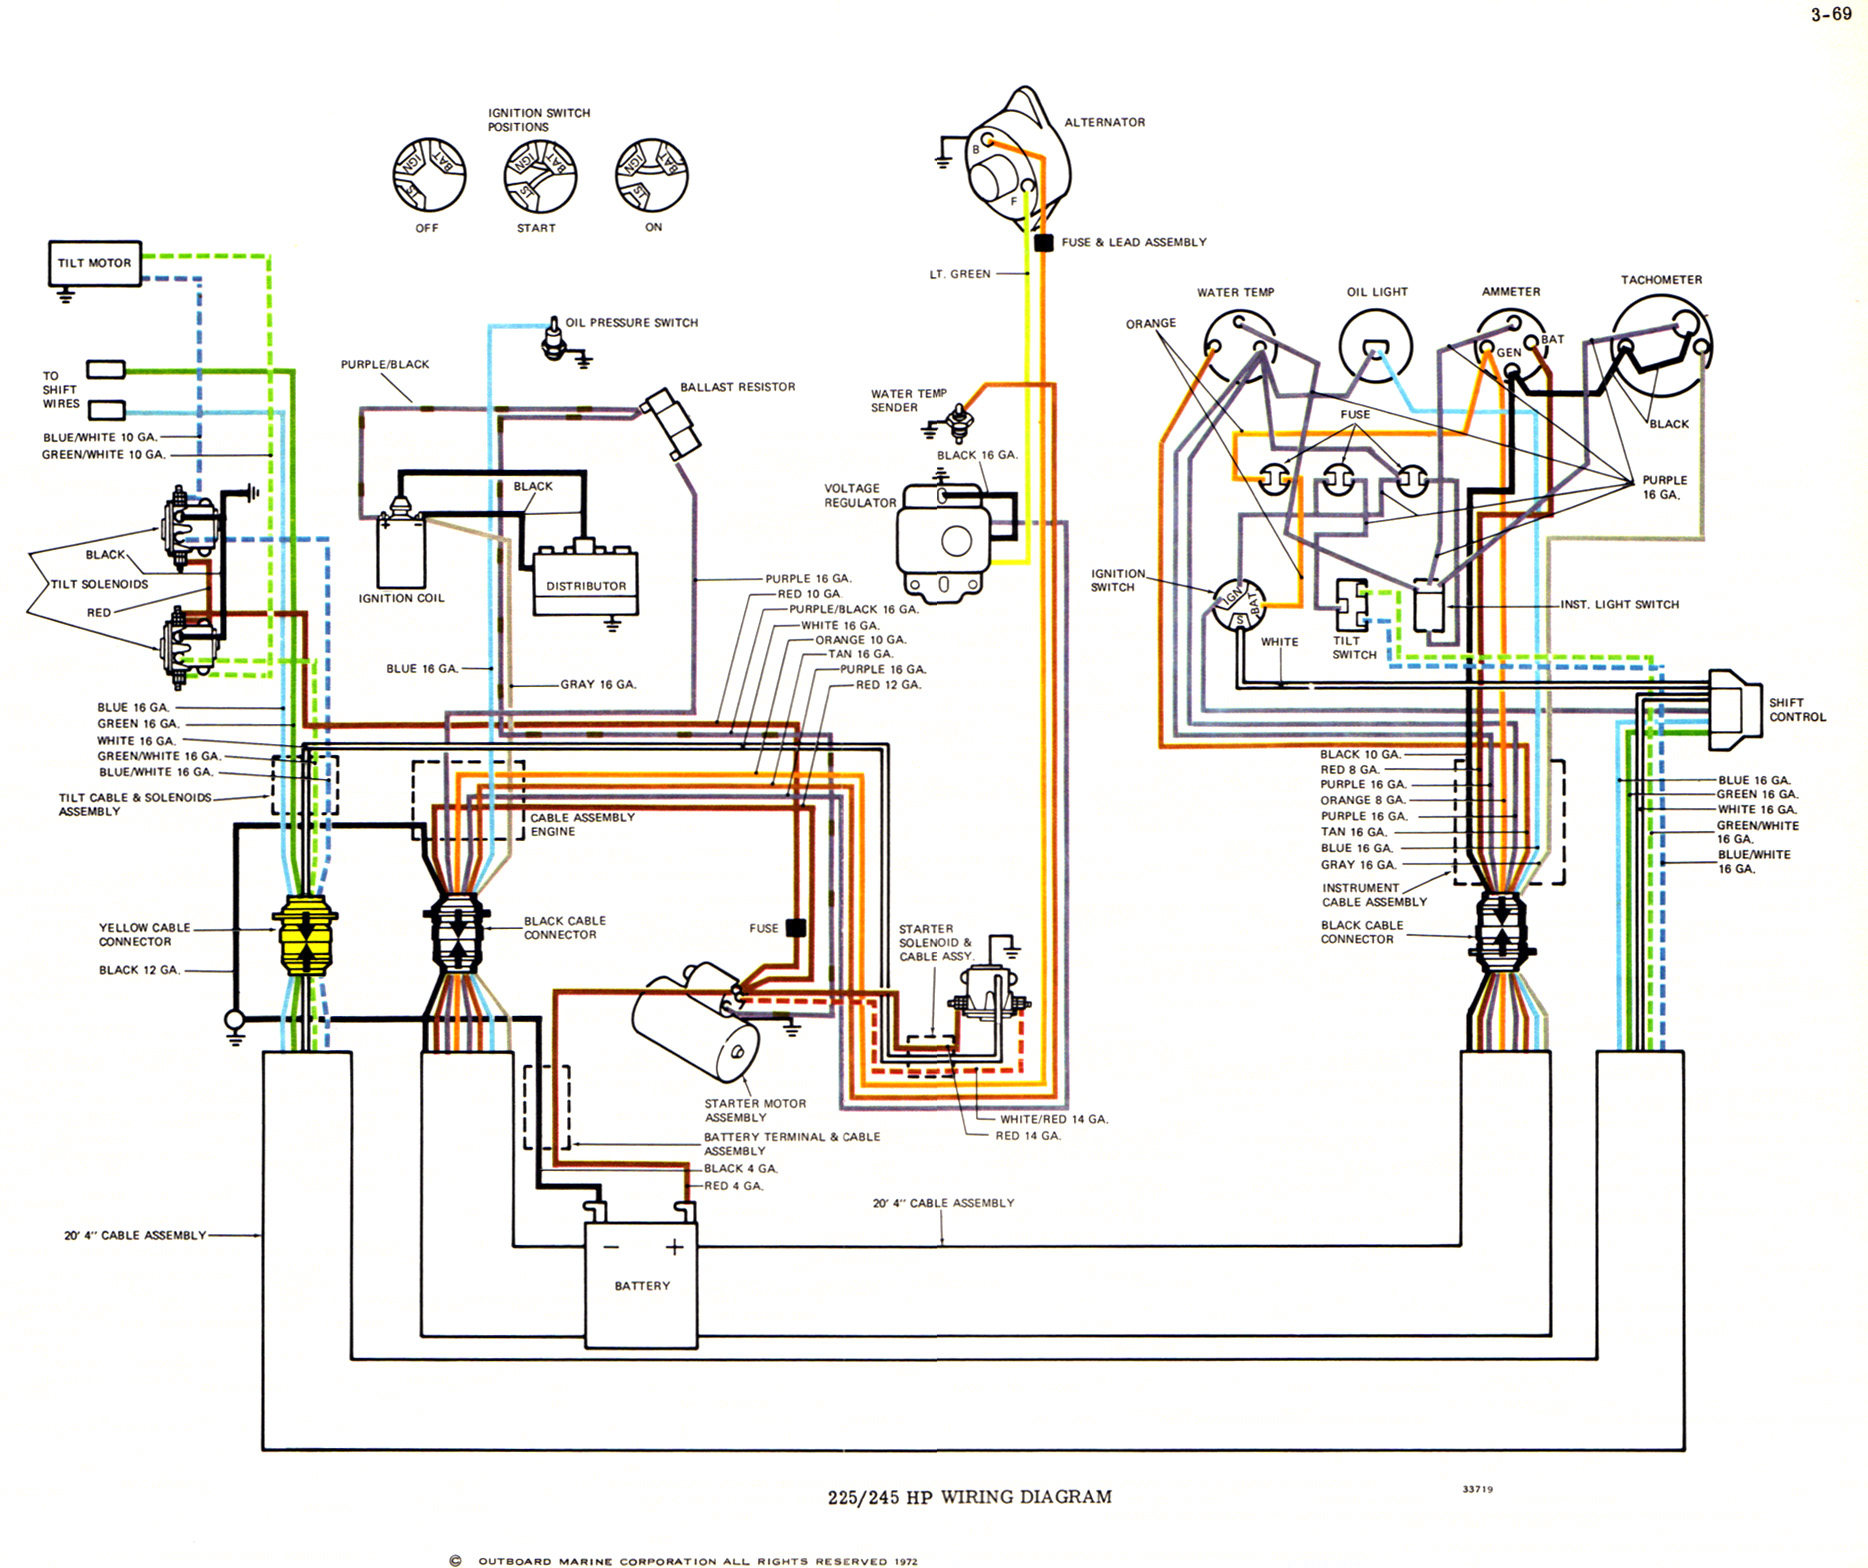 73_OMC_V8_all_big omc wiring diagram 1967 johnson 40 wiring diagram \u2022 wiring OMC Sterndrive Identification at bayanpartner.co